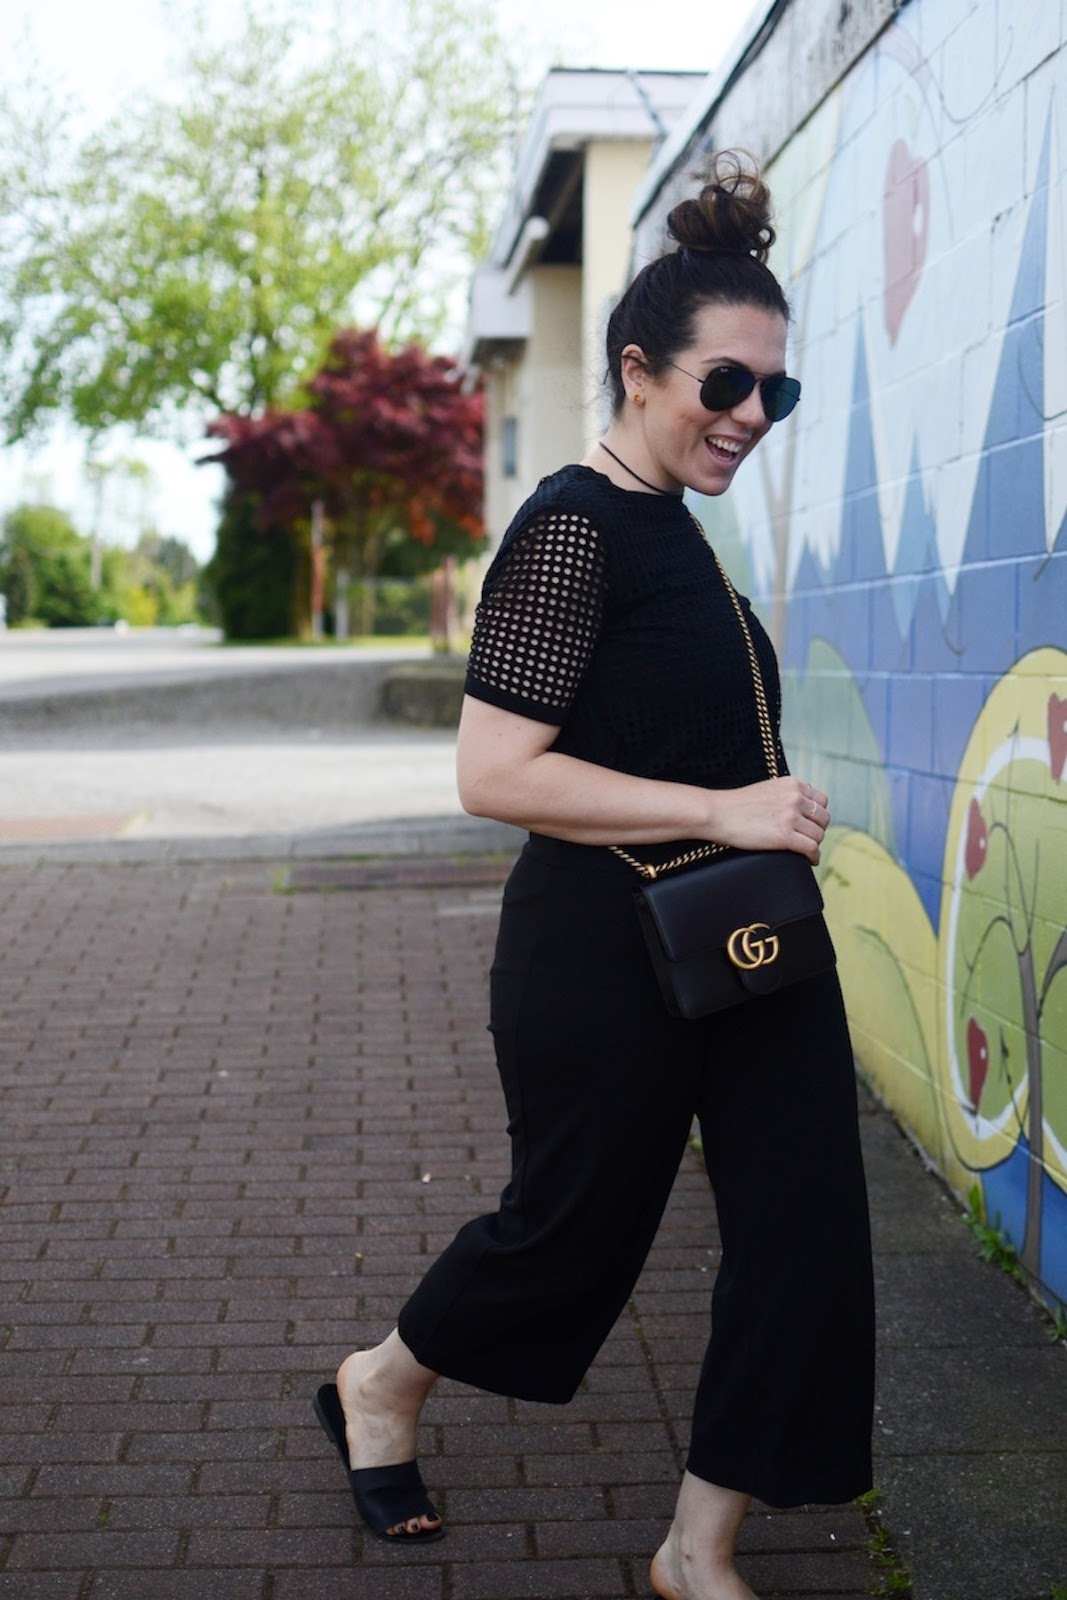 Bench mesh T shirt blogger vancouver le chateau culottes outfit